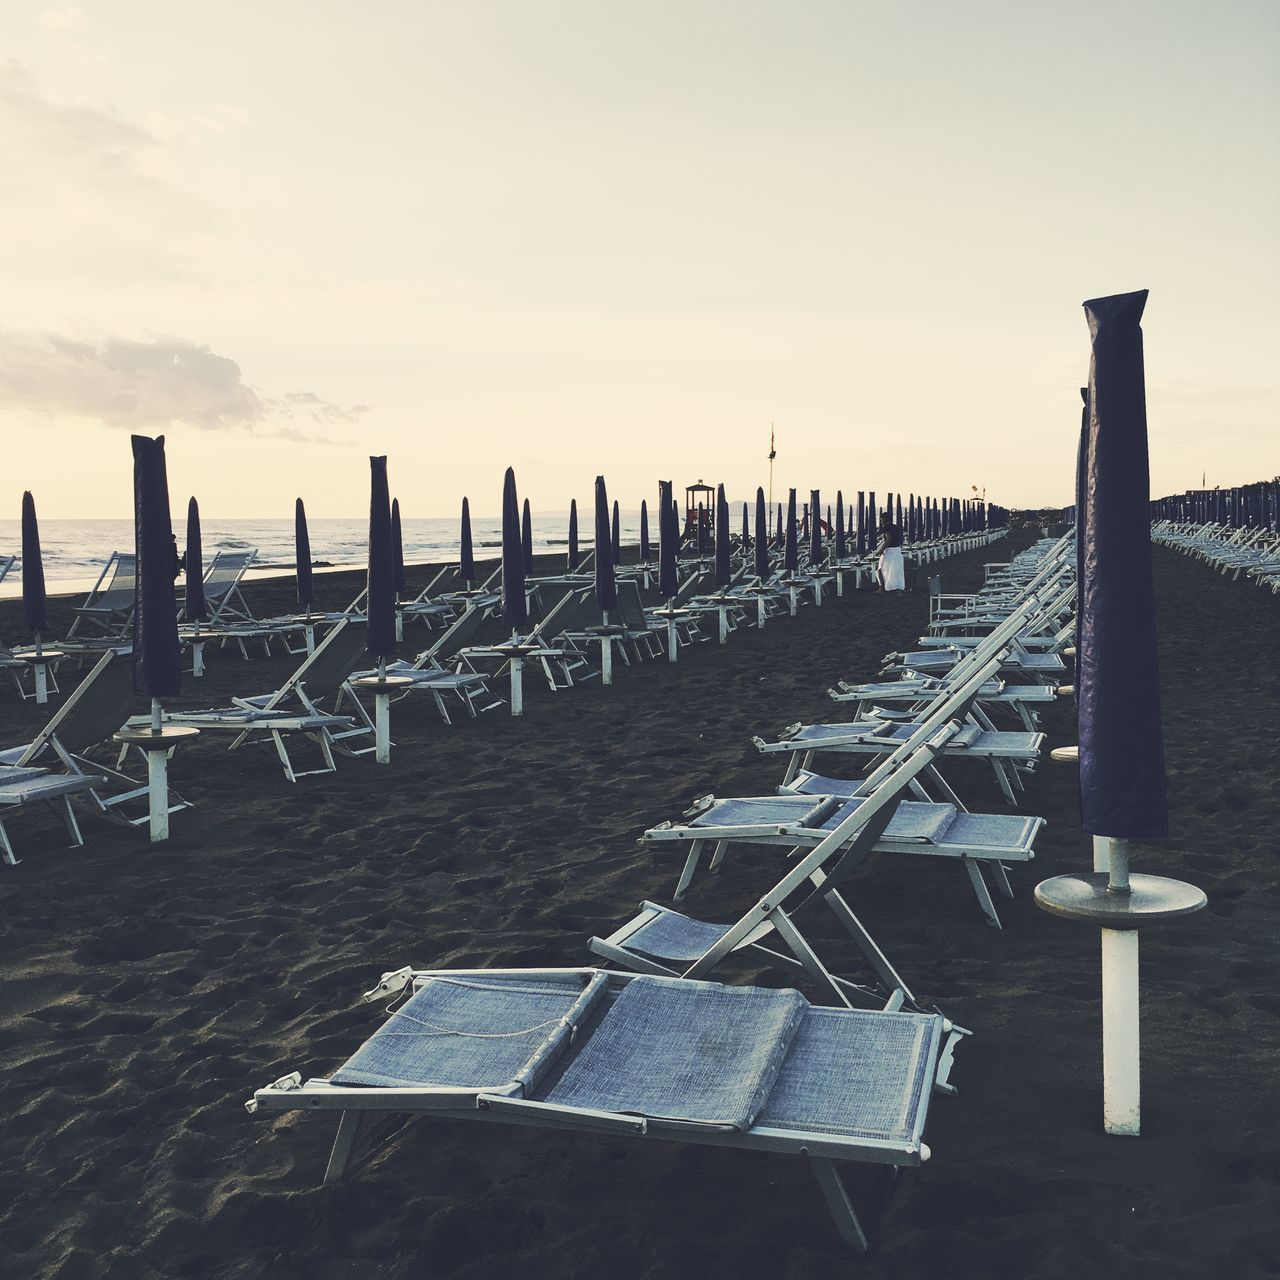 Parasols And Deck Chairs At Beach Against Sky During Sunset